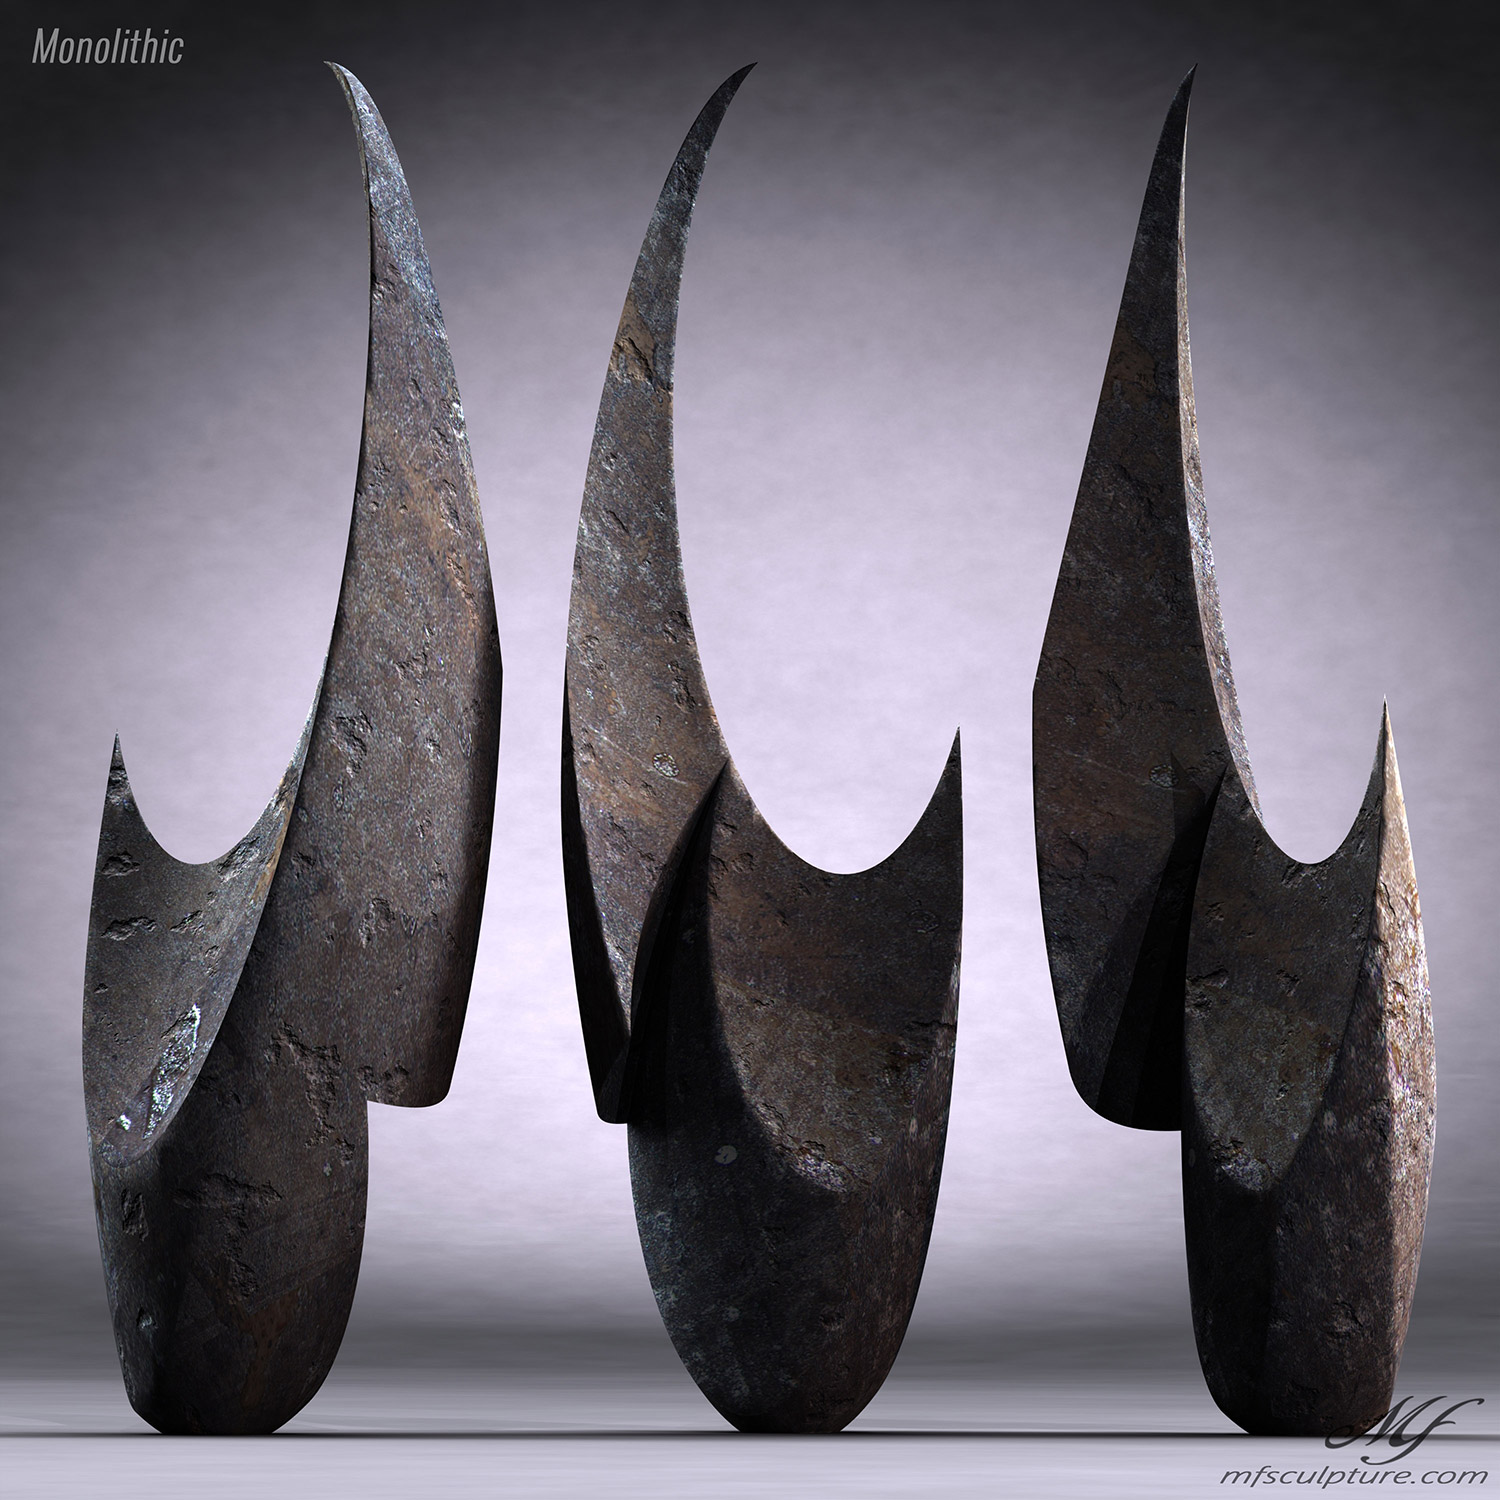 Monolithic Abstract Contemporary Sculpture Mike Fields 2